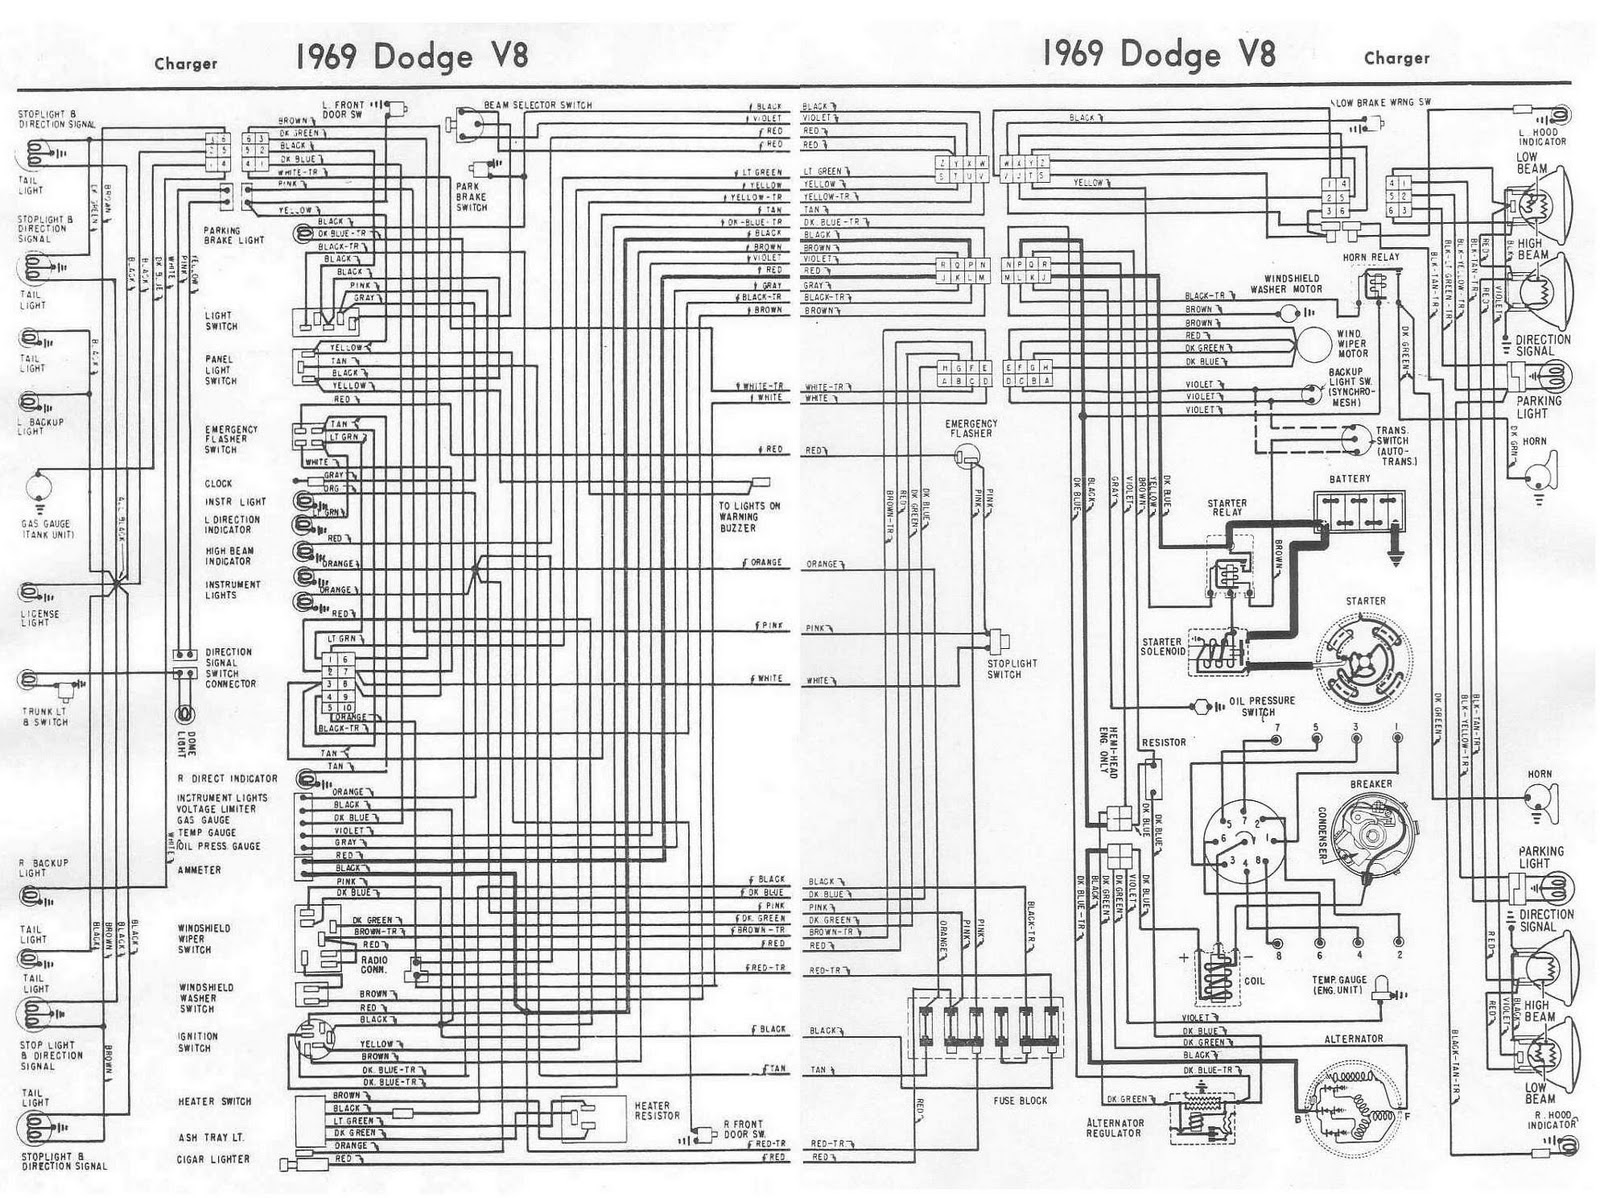 Dodge charger 1969 v8 complete electrical wiring diagram all 1969 dodge charger v8 complete wiring diagram sciox Gallery